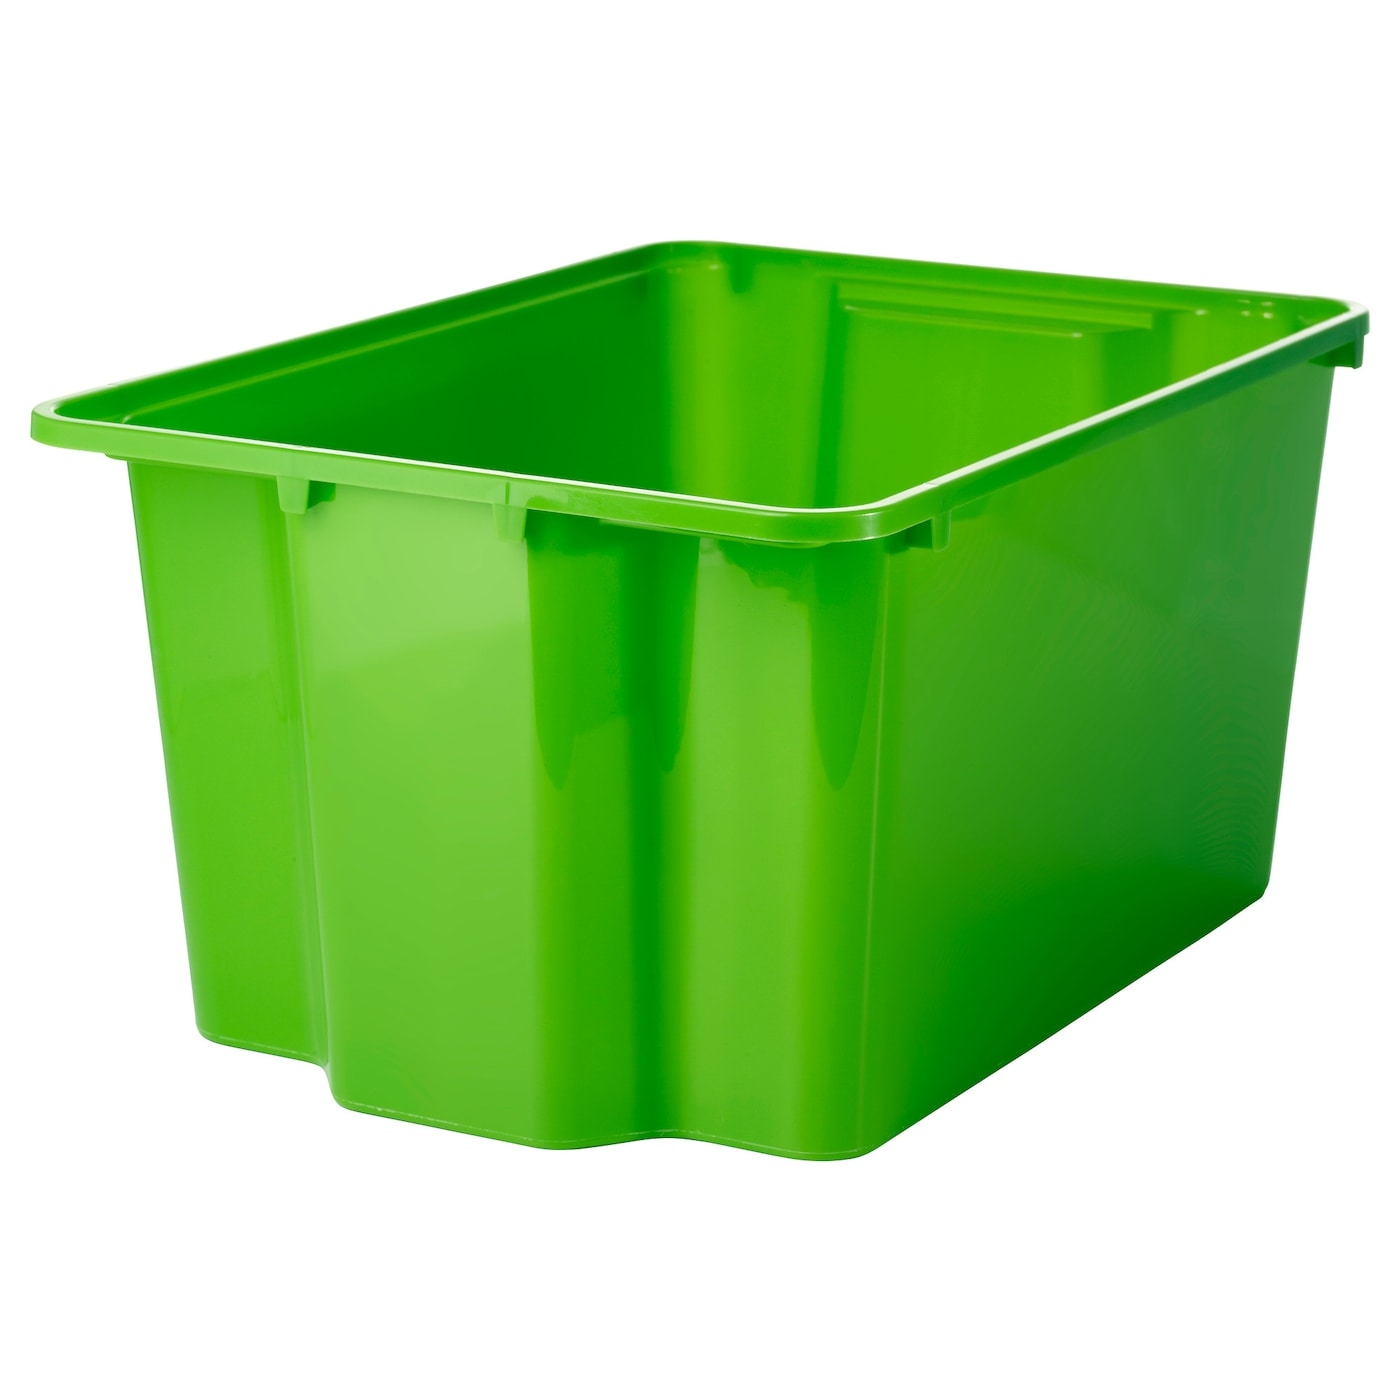 Ikea Gles Box Perfect For Sports Equipment Gardening Tools Or Laundry And Cleaning Accessories